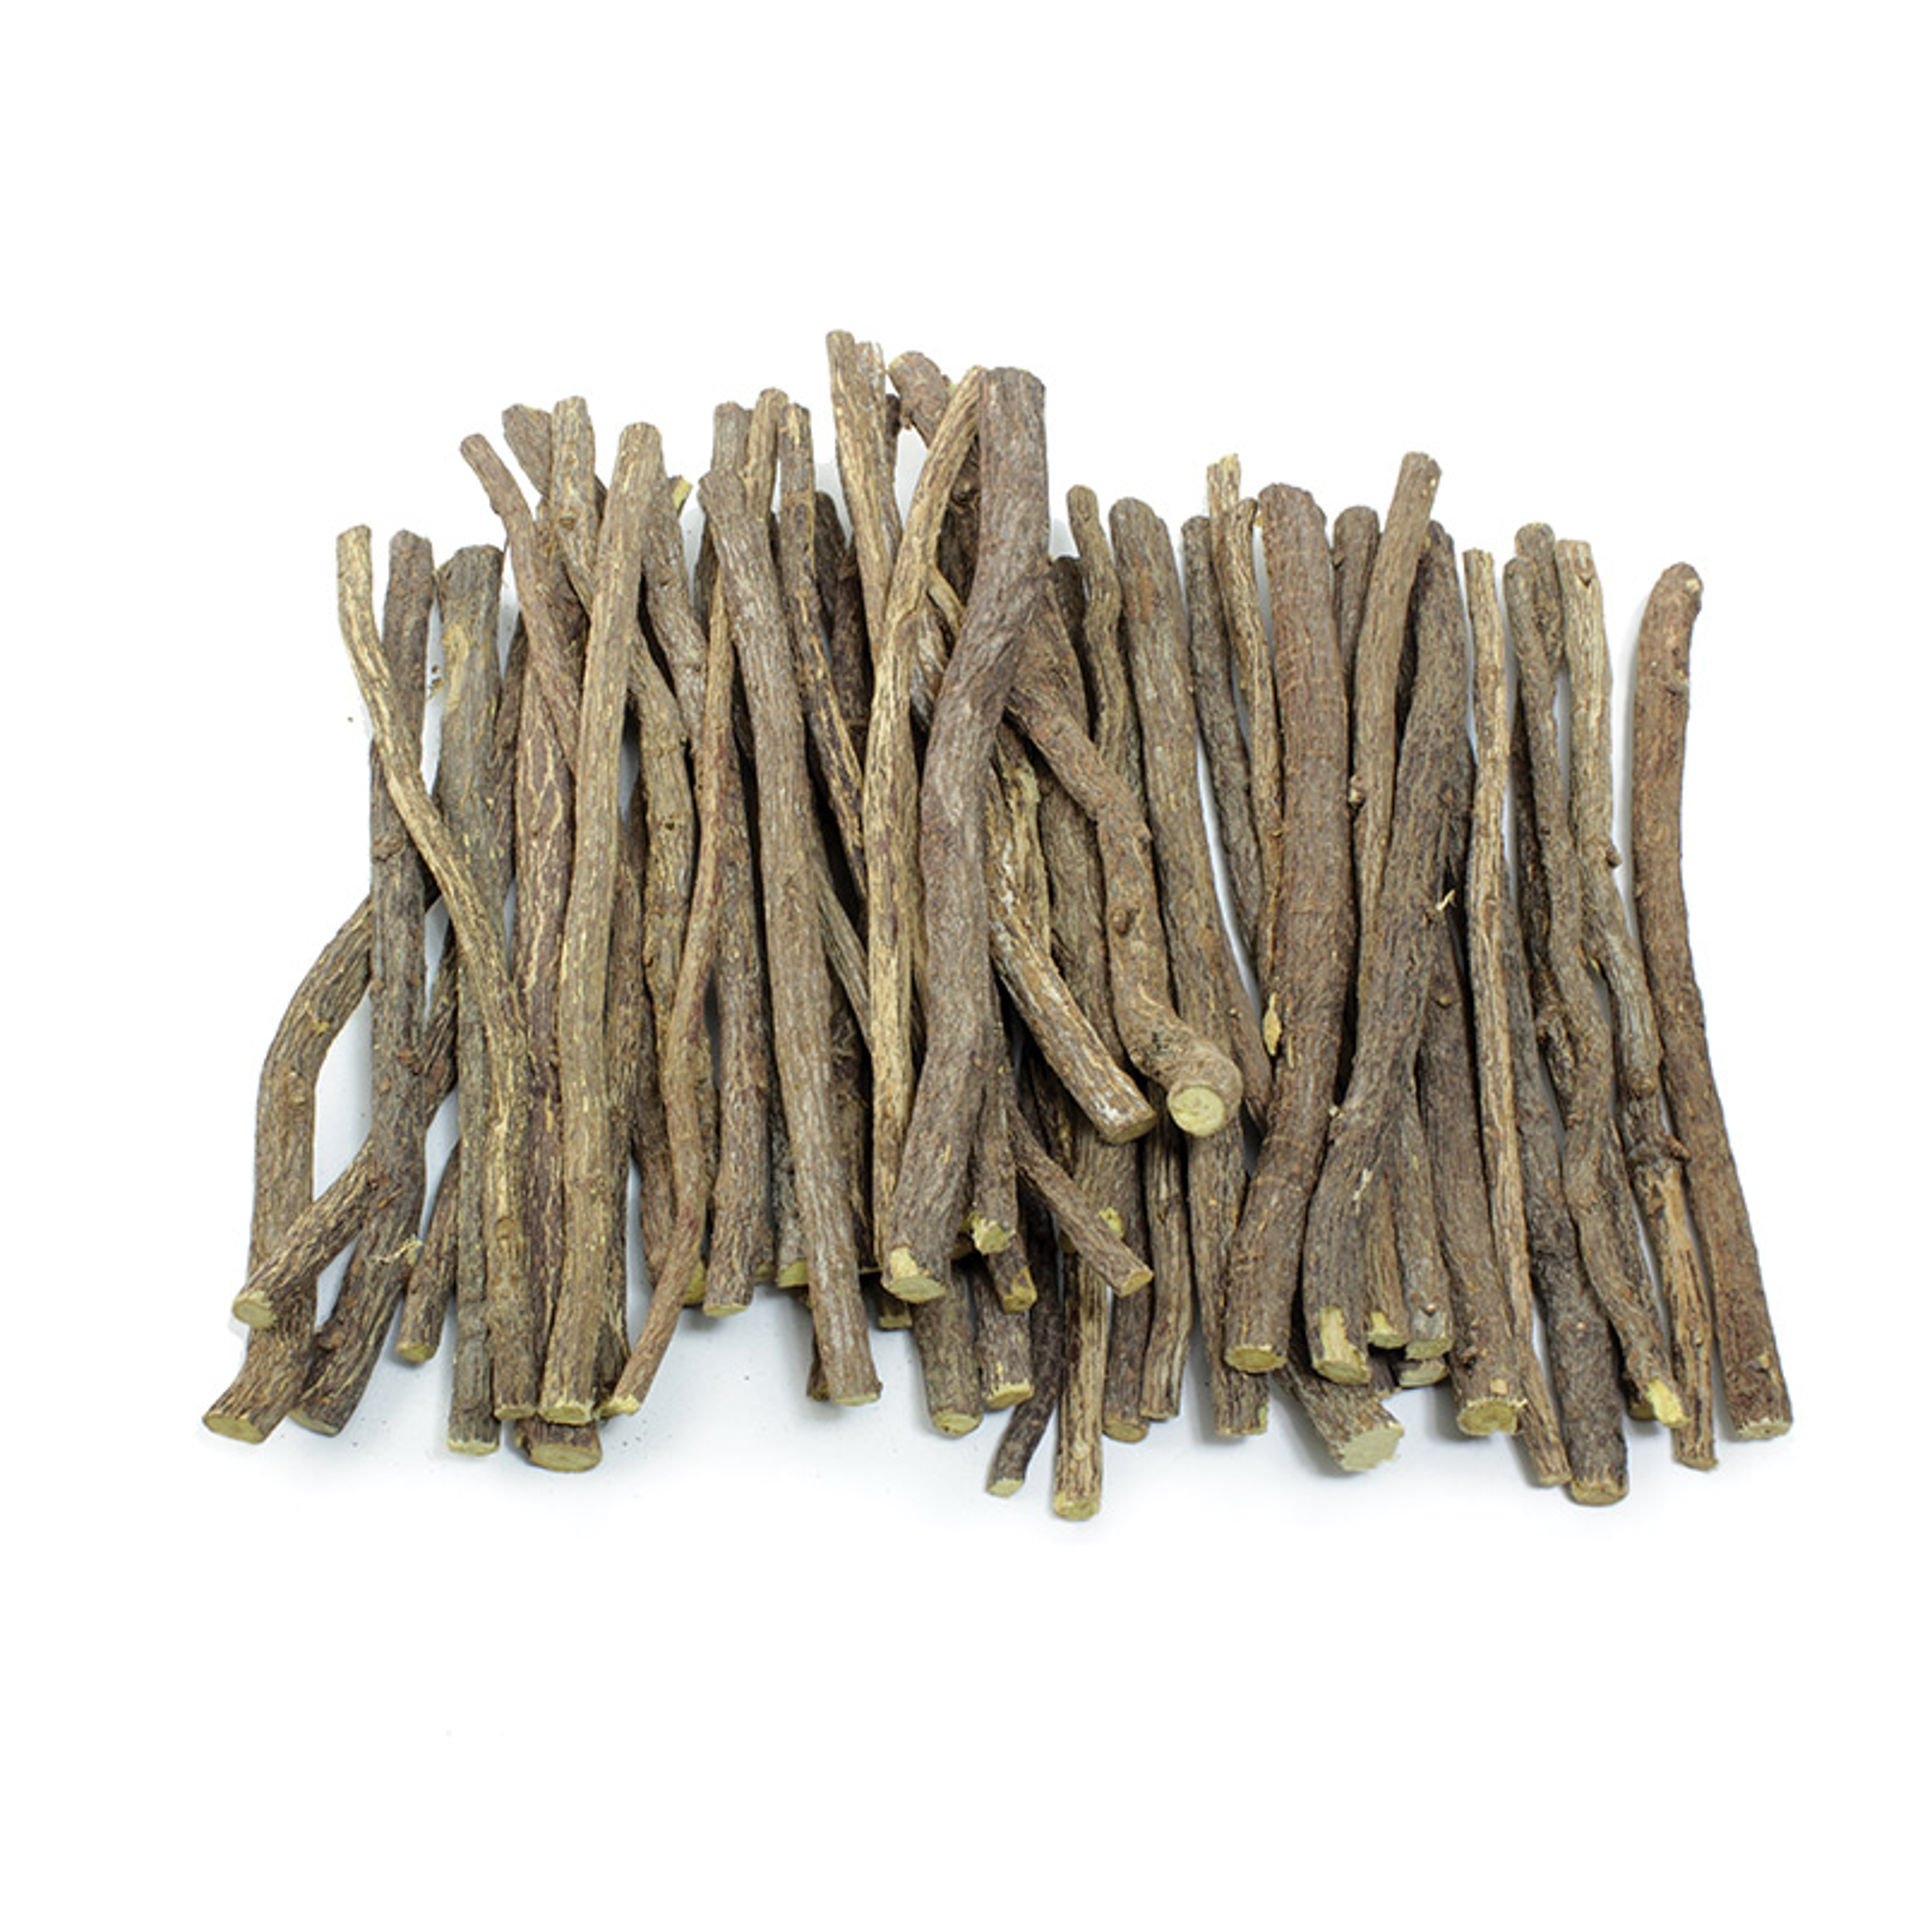 Picture of Chew Sticks - Various Flavors - 1 Lb.